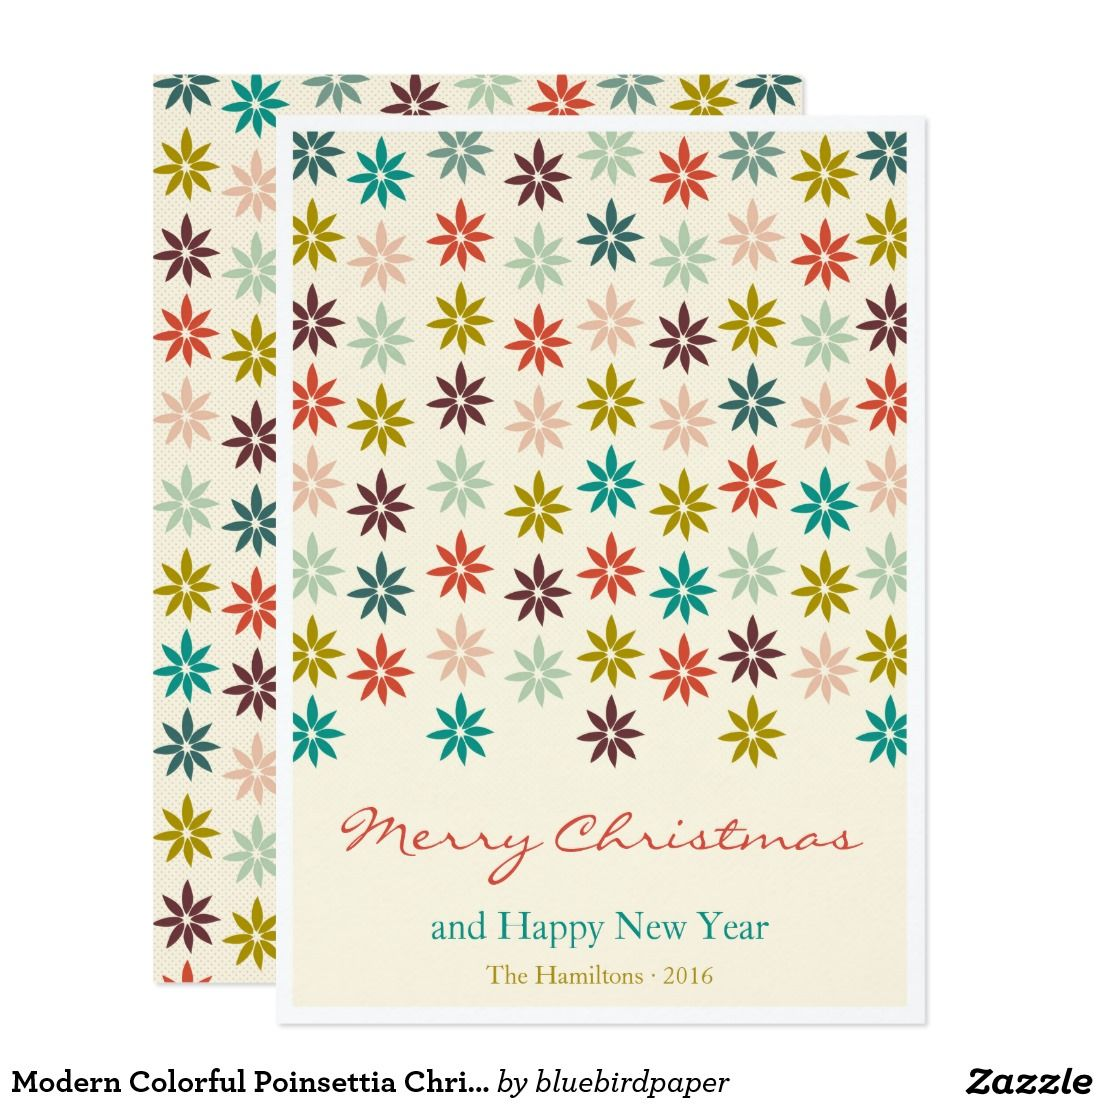 Modern Colorful Poinsettia Christmas Greeting